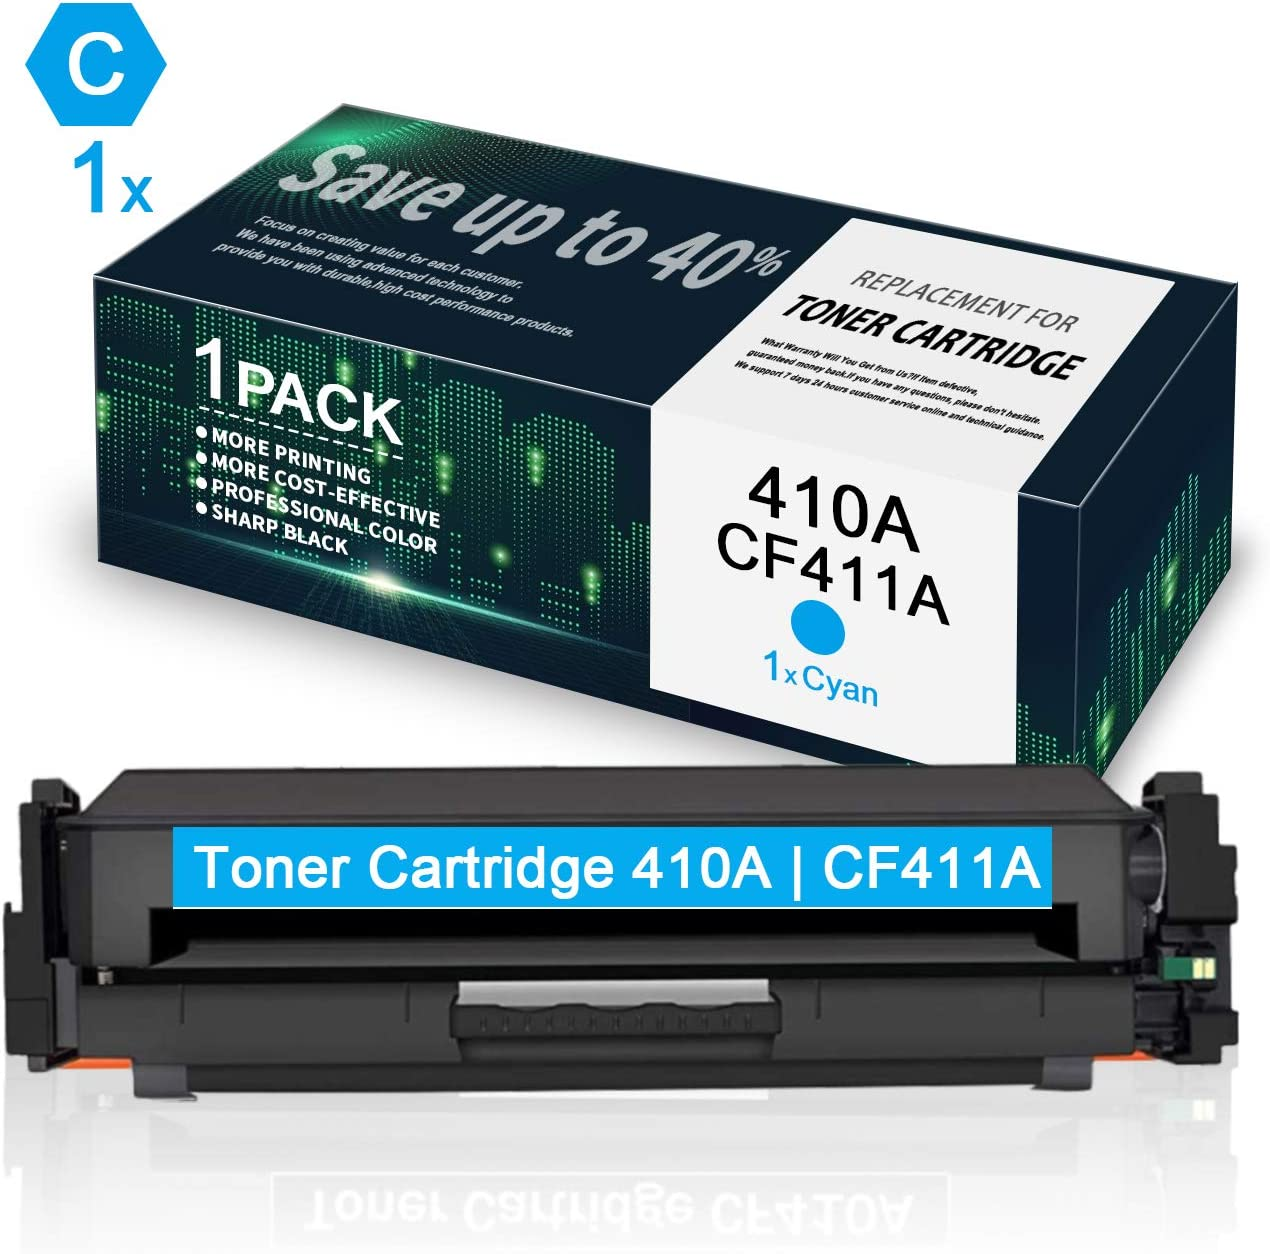 CF411A Cyan Toner Cartridge Replacement for HP 410A CF411A Toner for Use in HP Color Laserjet Pro MFP M477fdn M477fdw M477fnw M452dn M452dw M452nw Laser Printer 4 Pack 410A